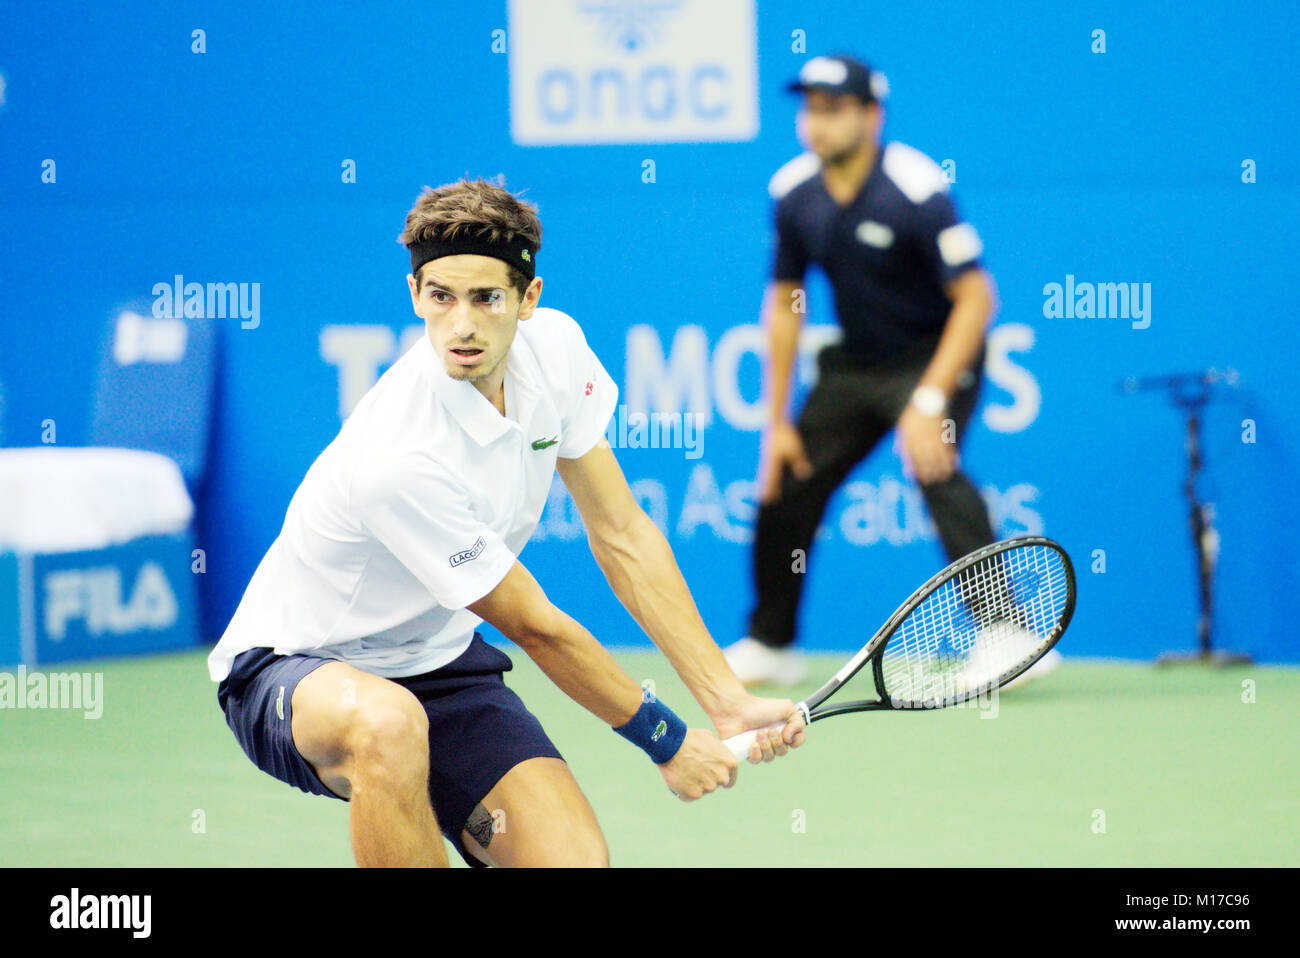 Pune, India. 4th January 2018. Pierre-Hugues Herbert of France, in action in a quarter-final match of Tata Open - Stock Image